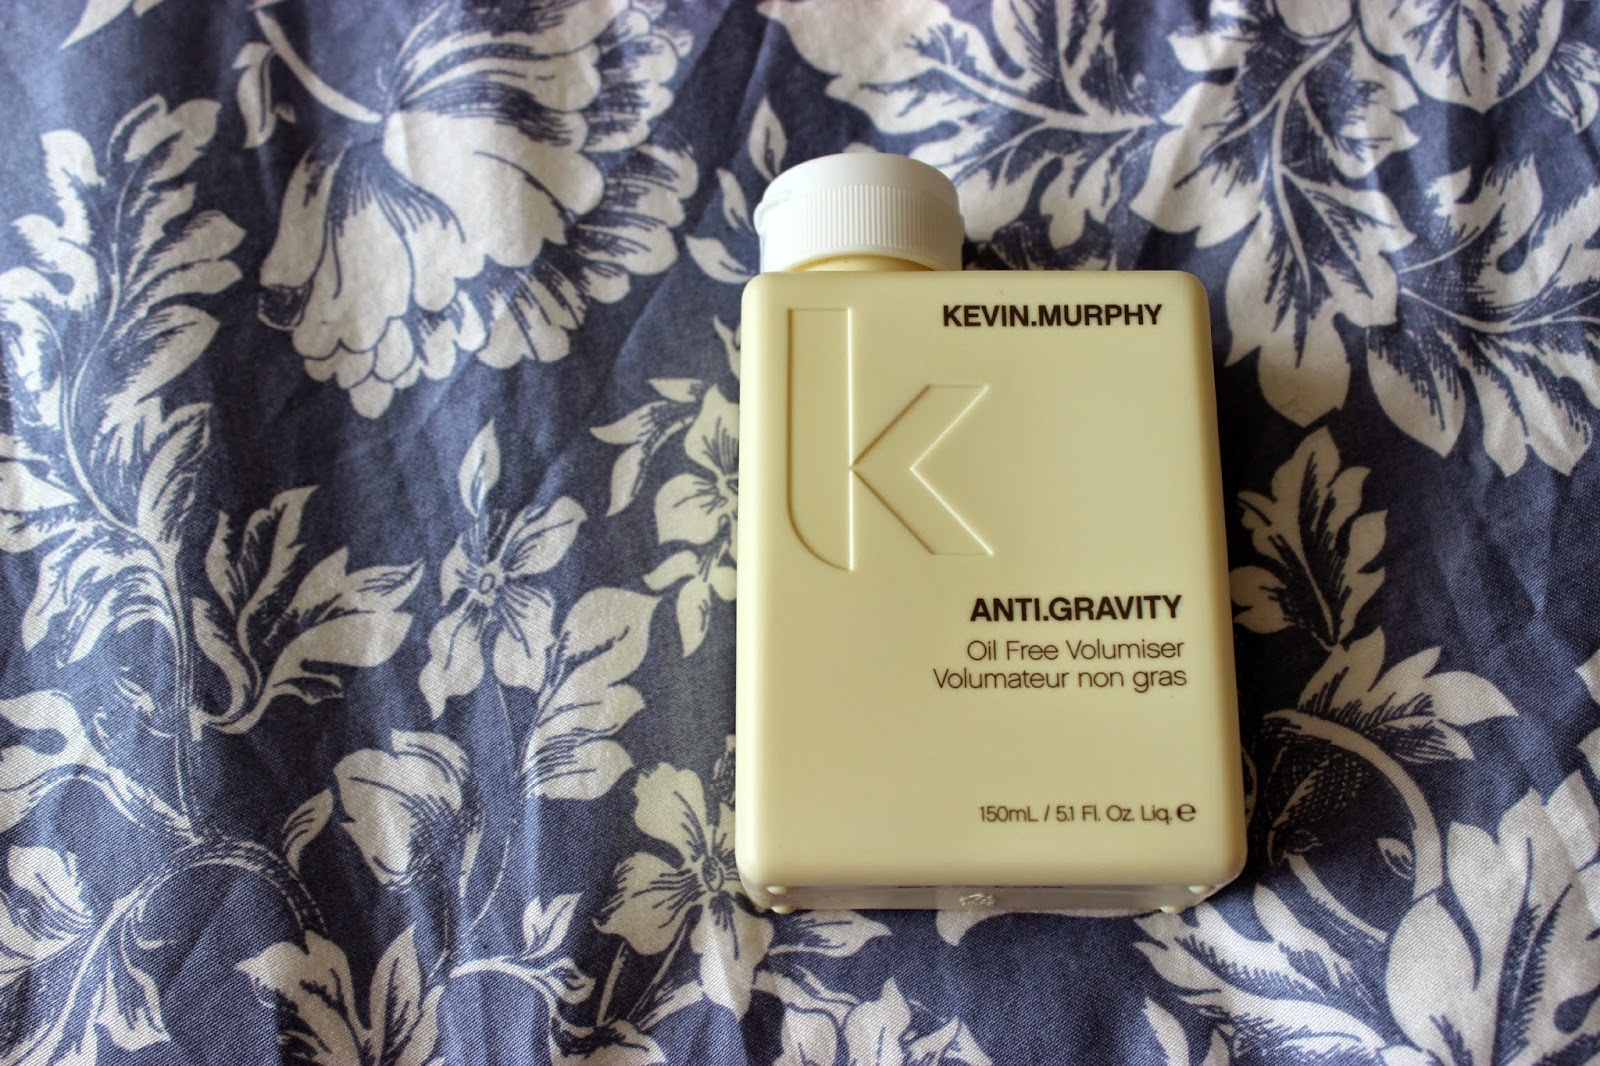 Picture of Kevin Murphy Anti Gravity Oil Free Volumiser